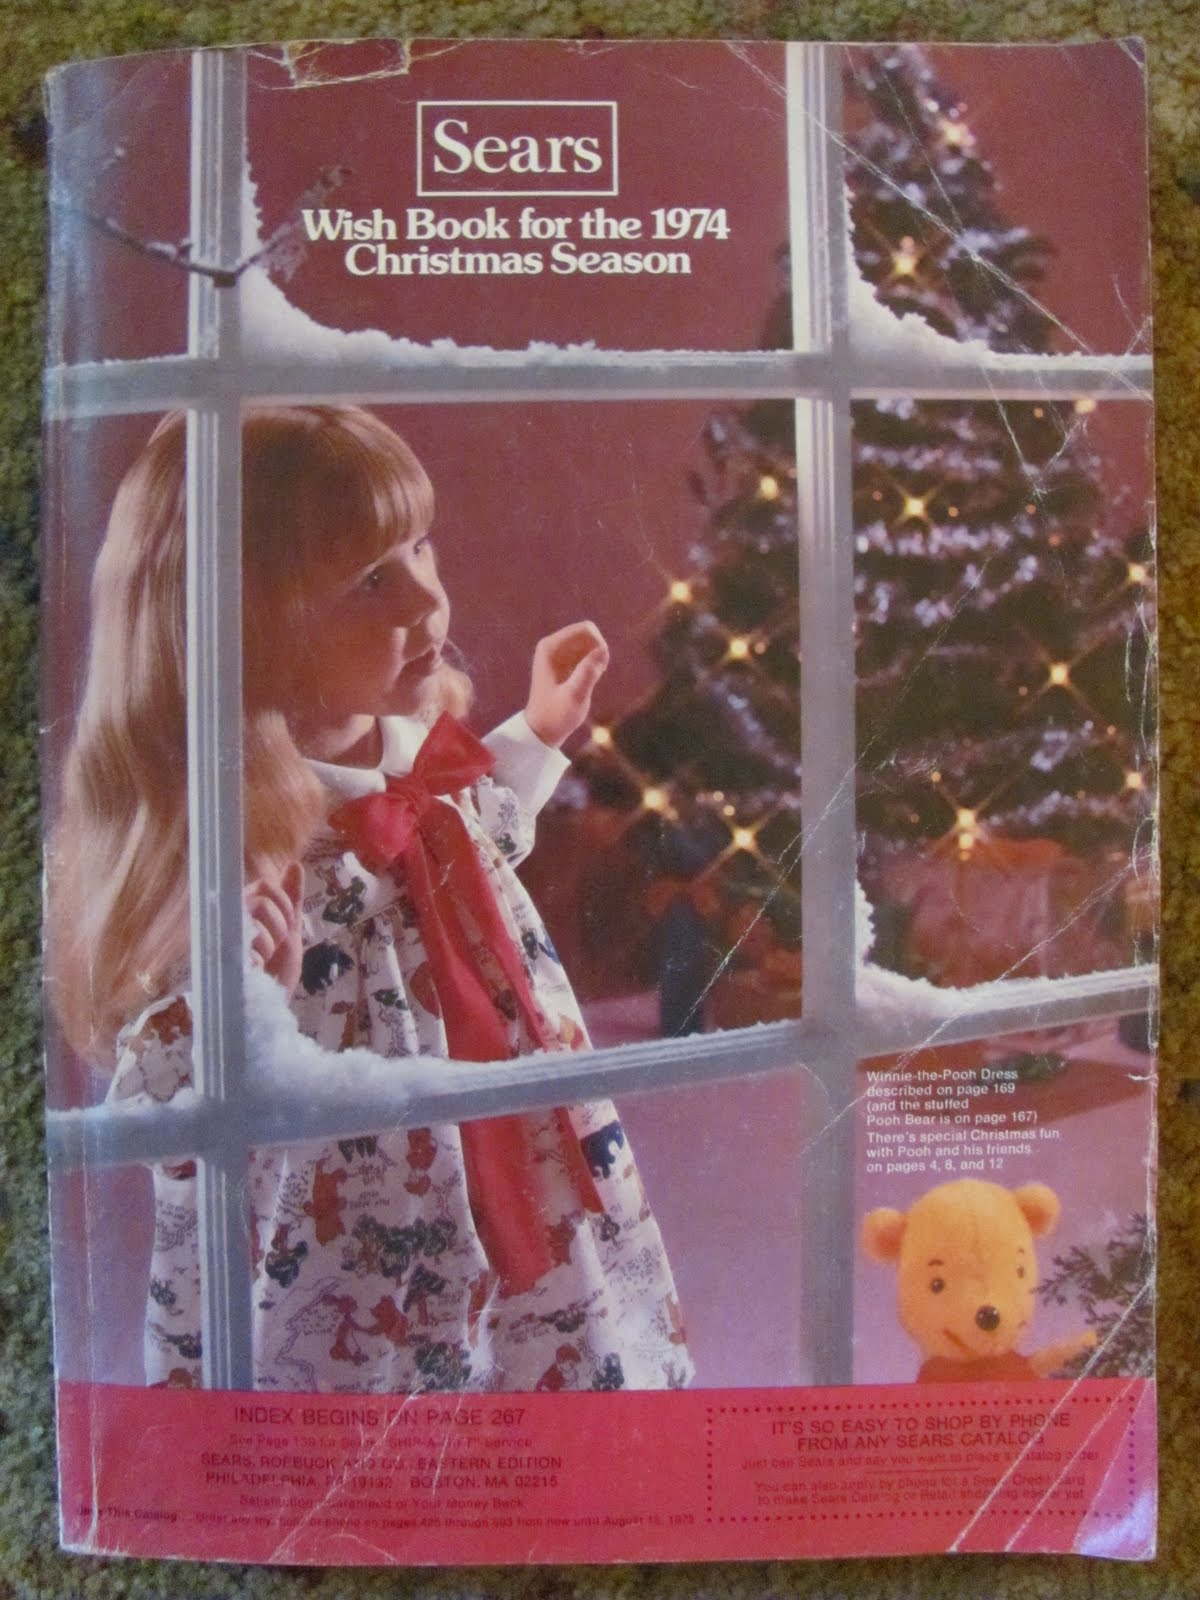 2011 Sears Christmas Wish Book Catalog - Good Condition - Simpsons-Sears Canada